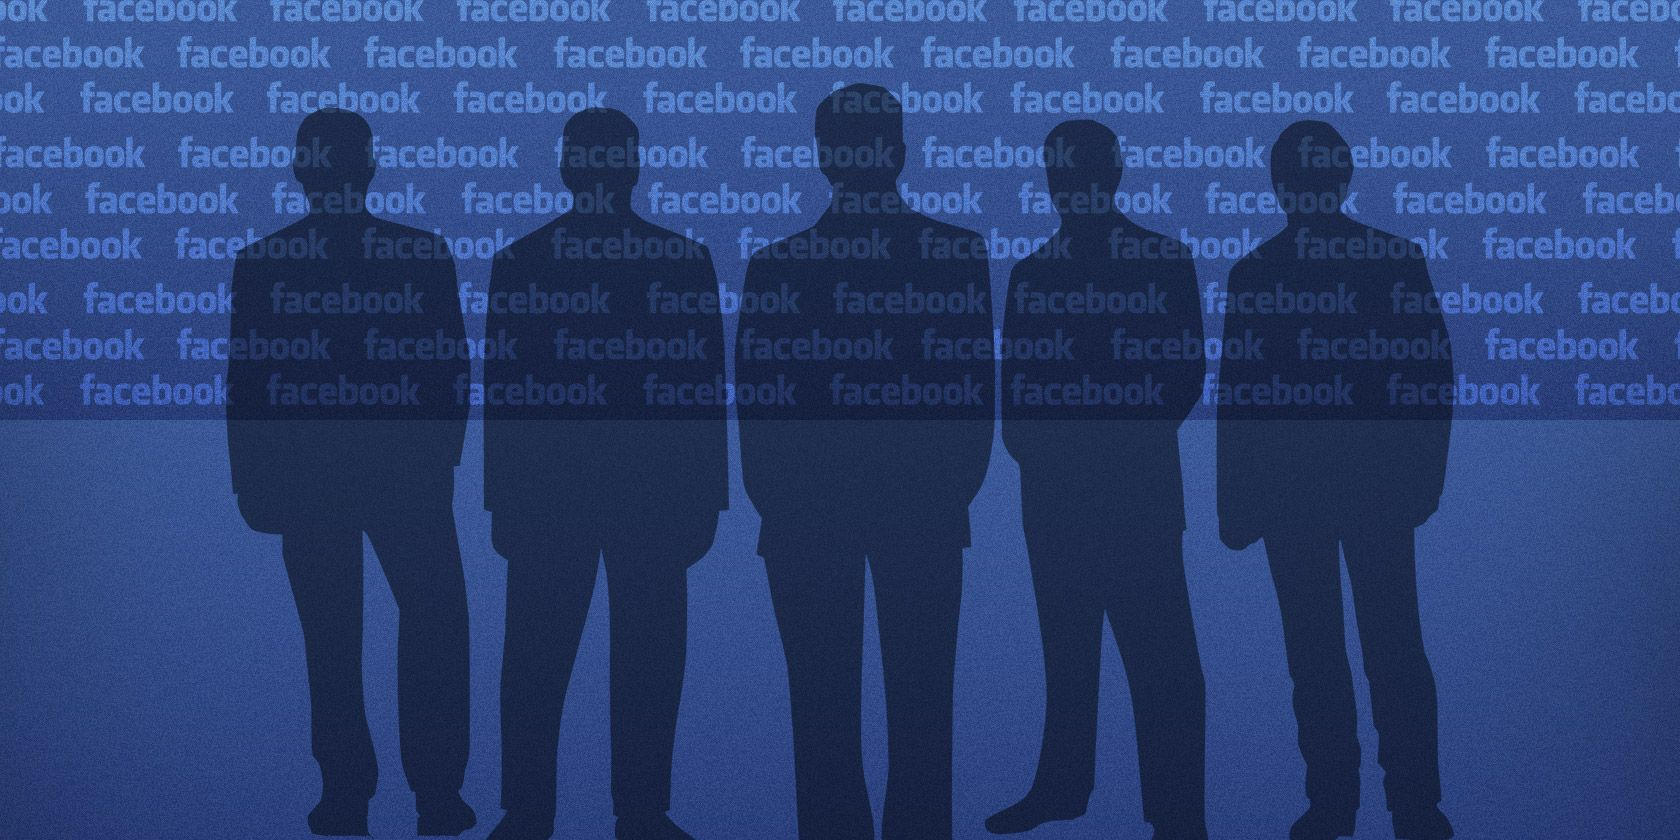 47b053f87688 Can You Really See Who Viewed Your Facebook Profile  – smart technology